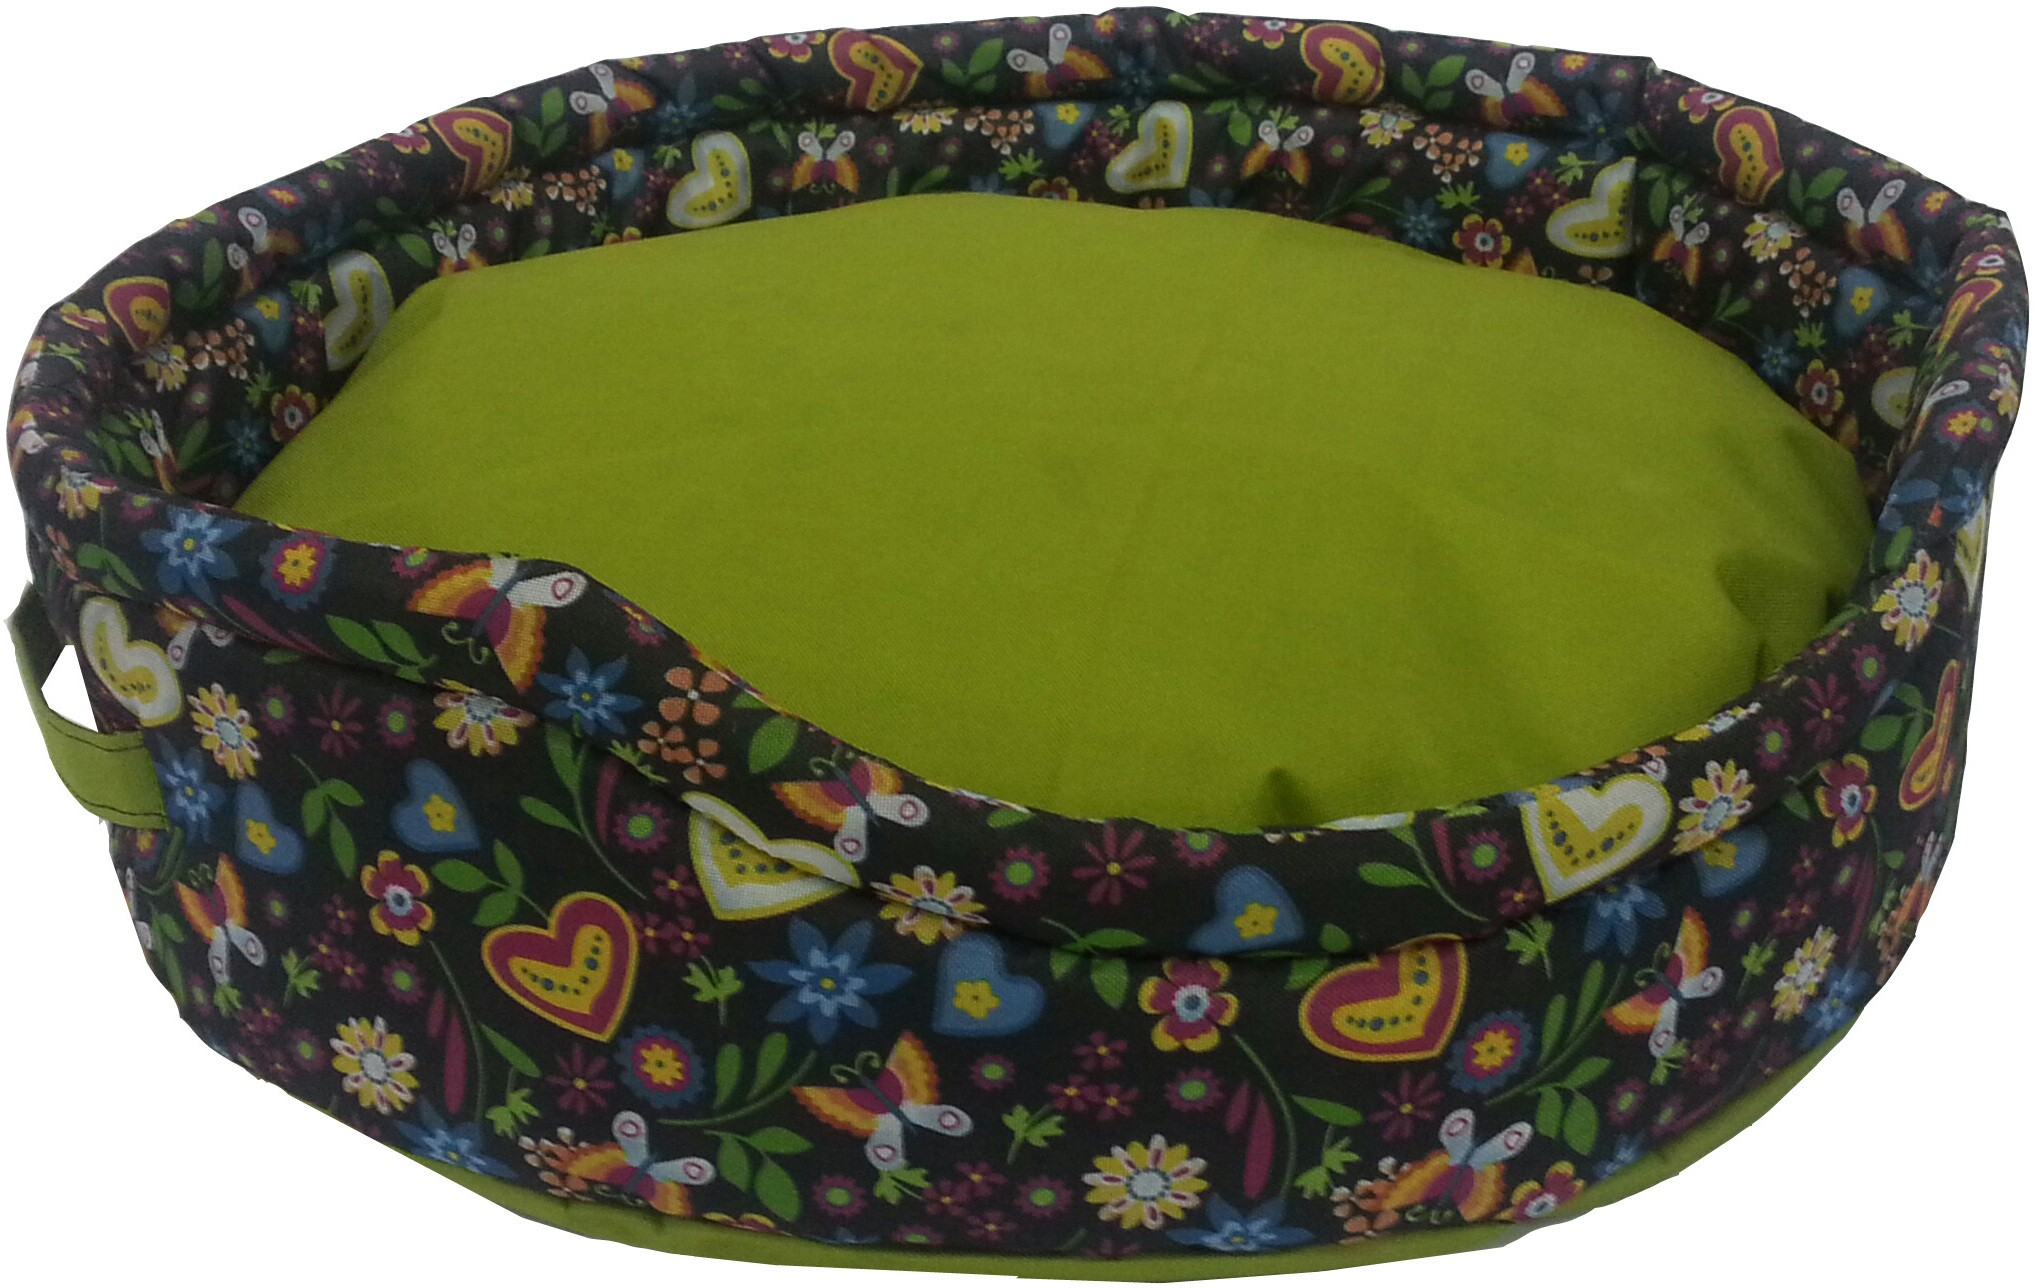 Snug Hug 01 Dog Bed S Pet Bed